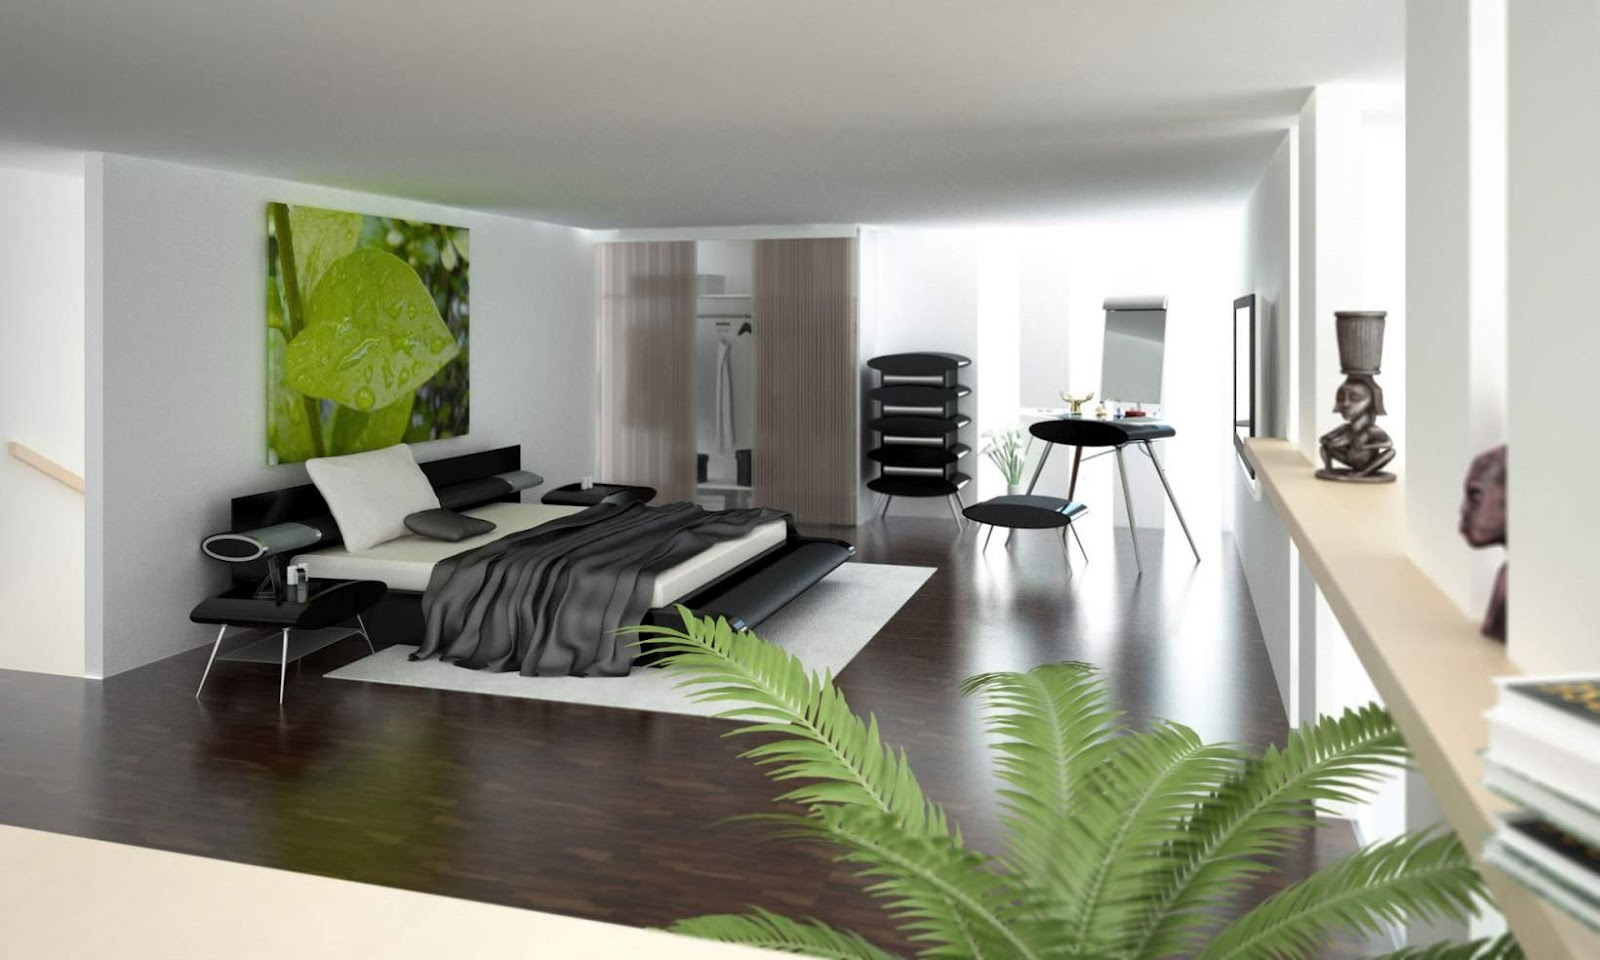 Related For Minimalist Bedroom Design Bedroom Design Minimalist Design